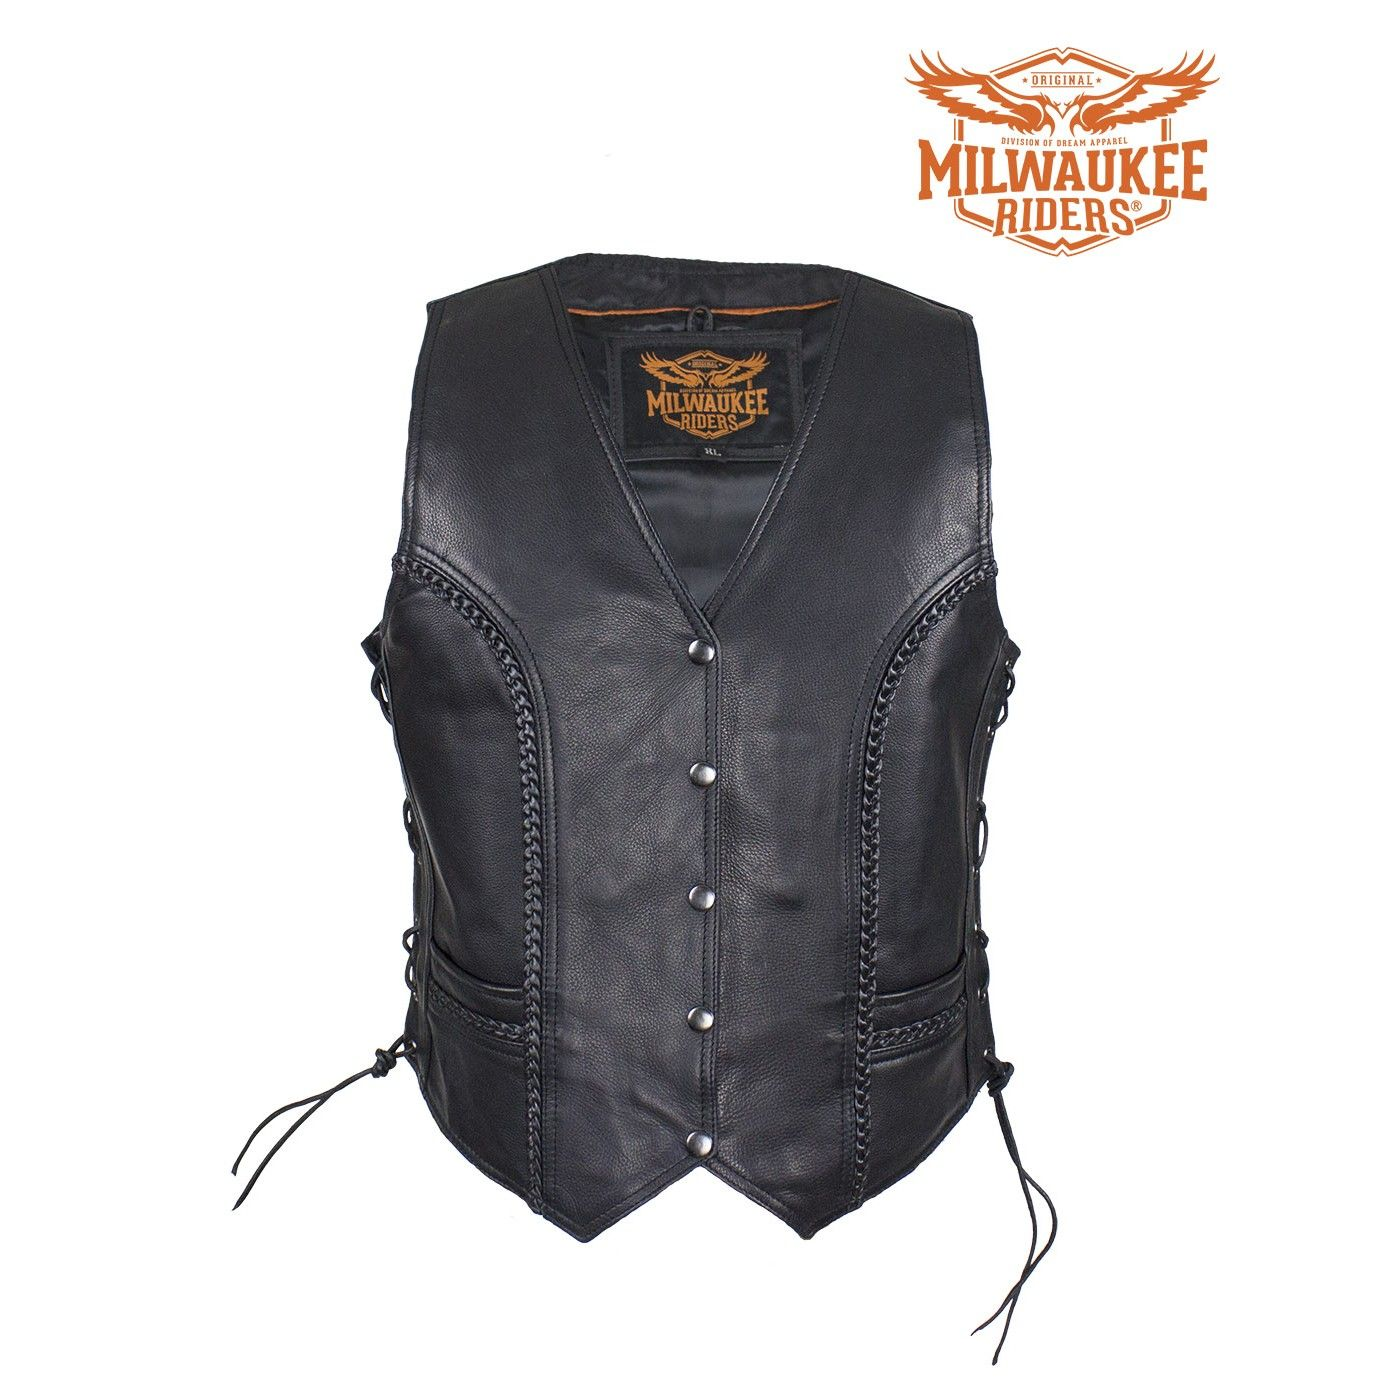 Womens Naked Leather Studded Motorcycle Vest W/ Concealed